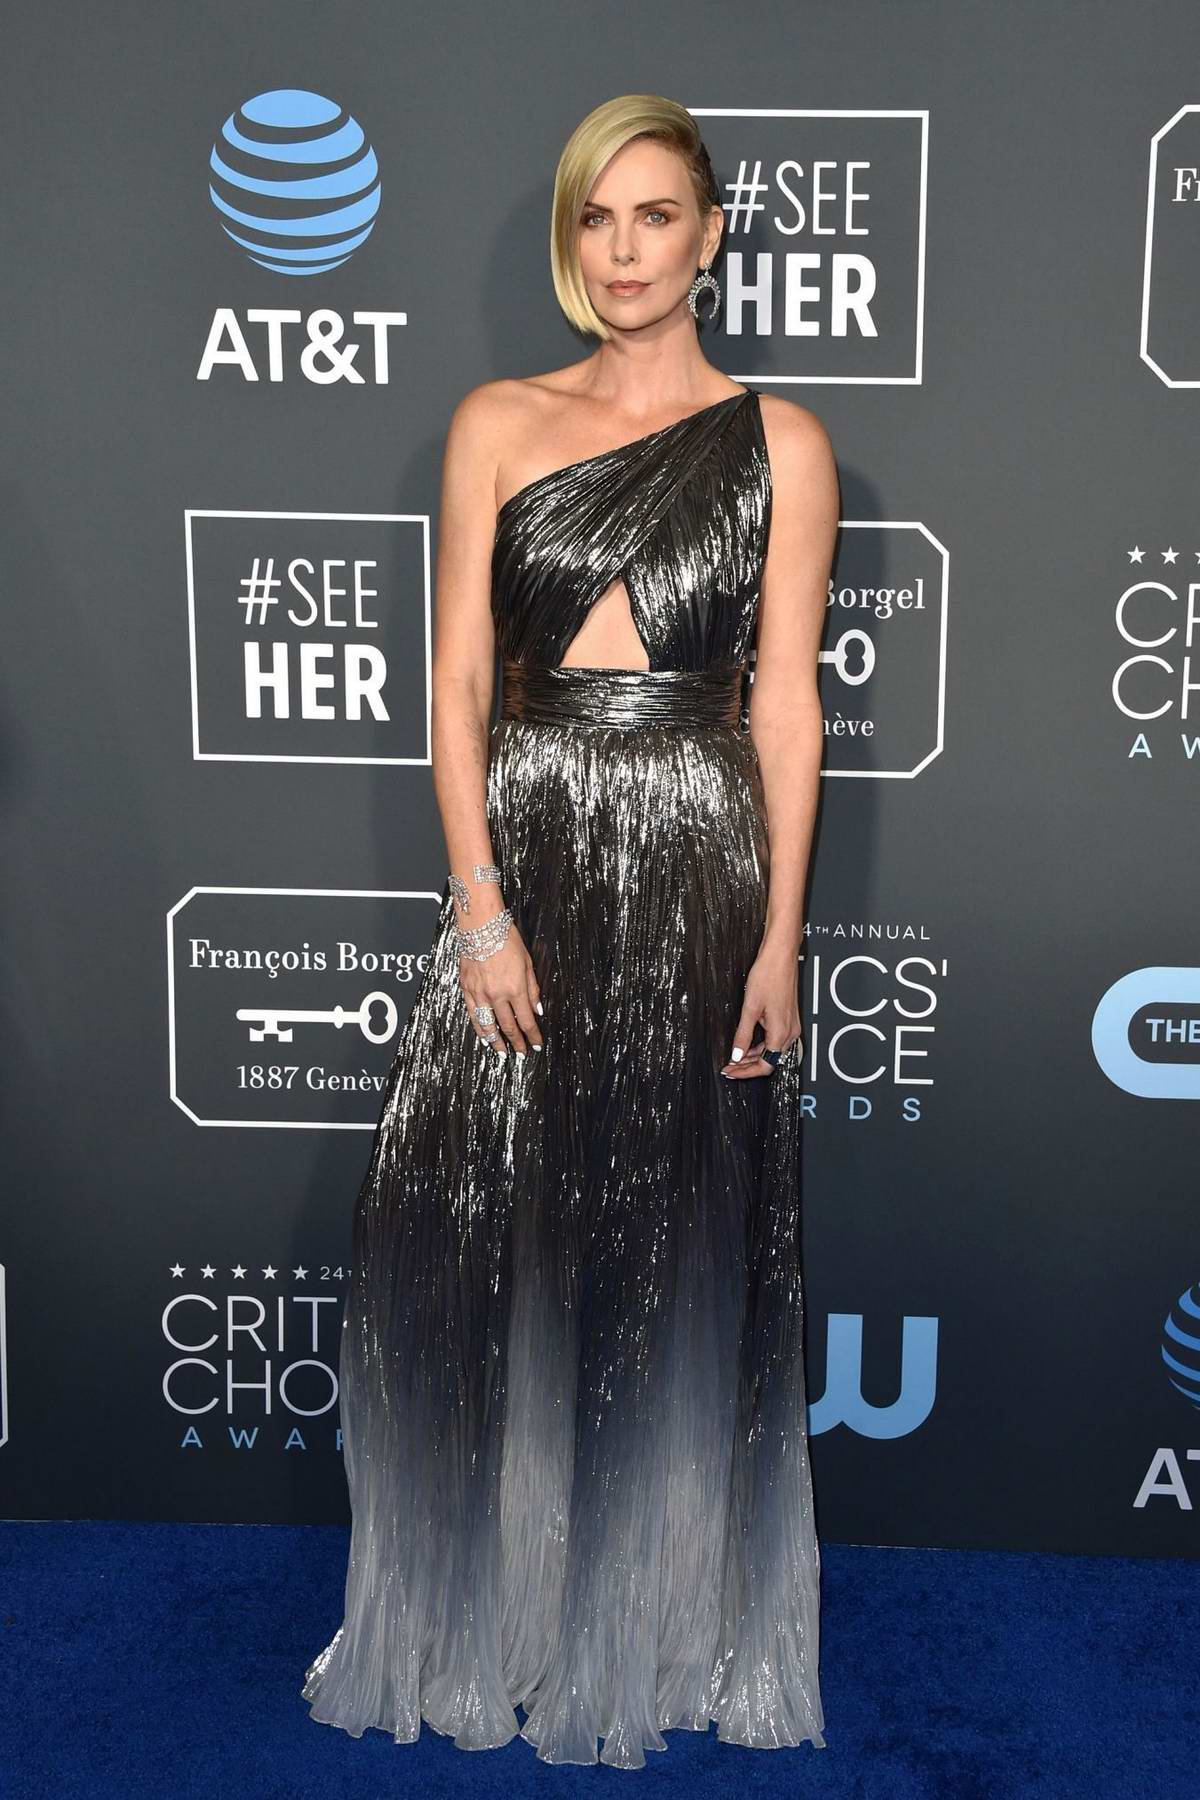 Charlize Theron attends the 24th Annual Critics' Choice Awards at Barker Hangar in Santa Monica, California